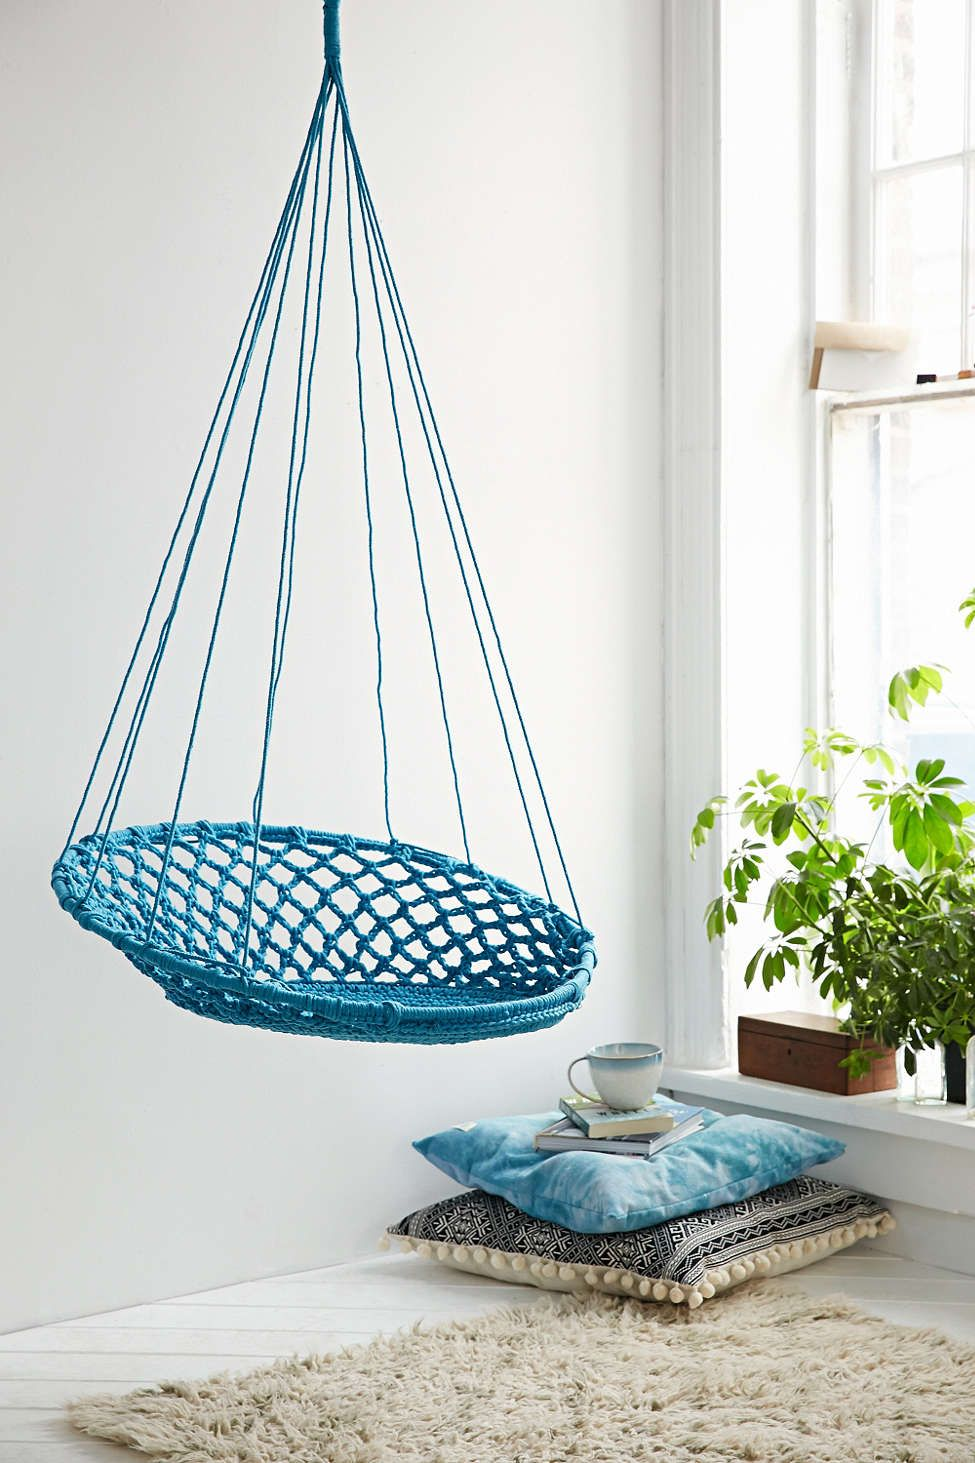 Cuzco hanging chair hanging chair urban outfitters and urban